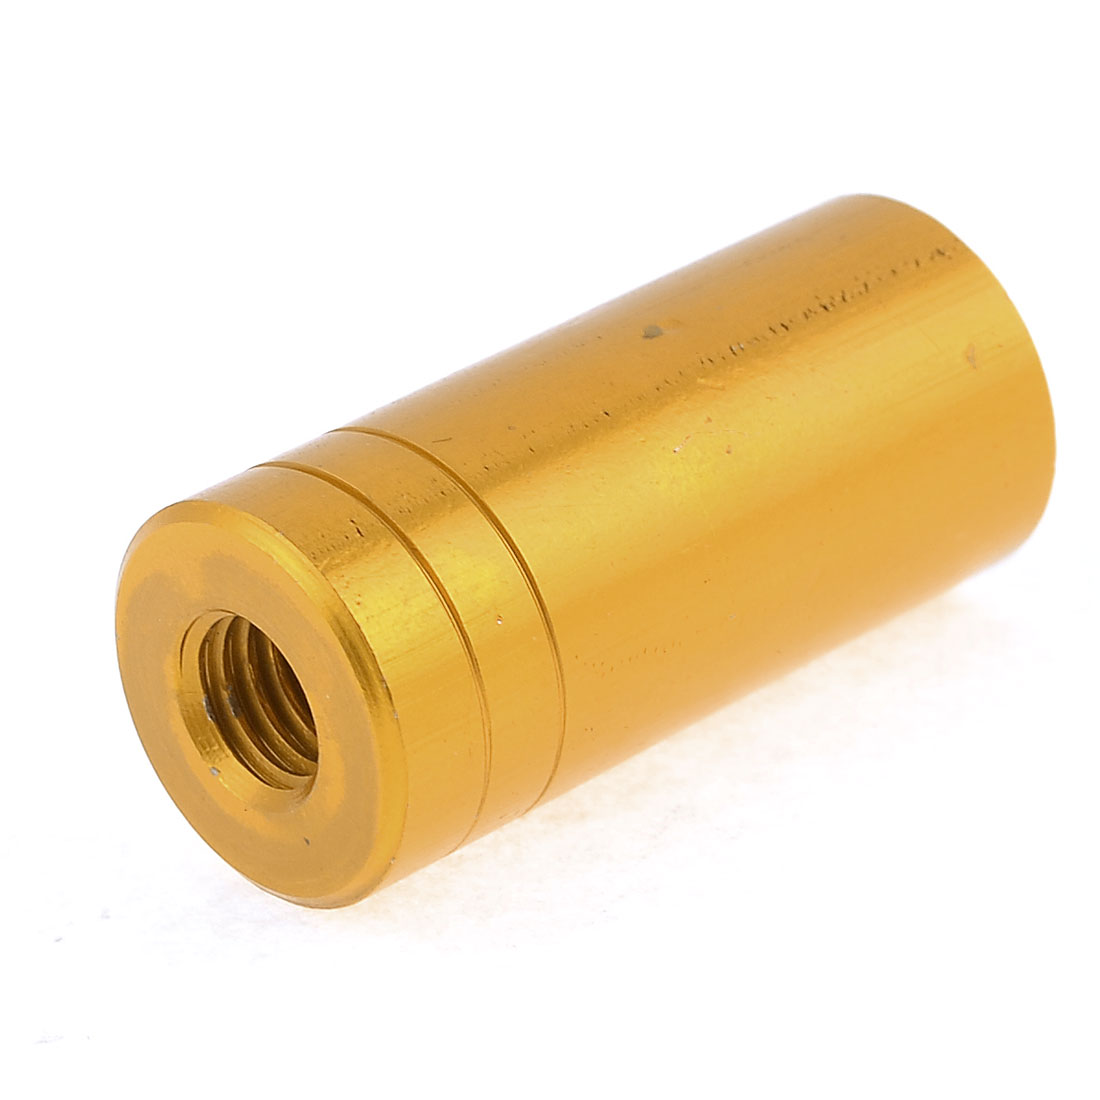 1.7cm x 3.7cm Copper Tone Aluminum Alloy Connector for Fishing Landing Net